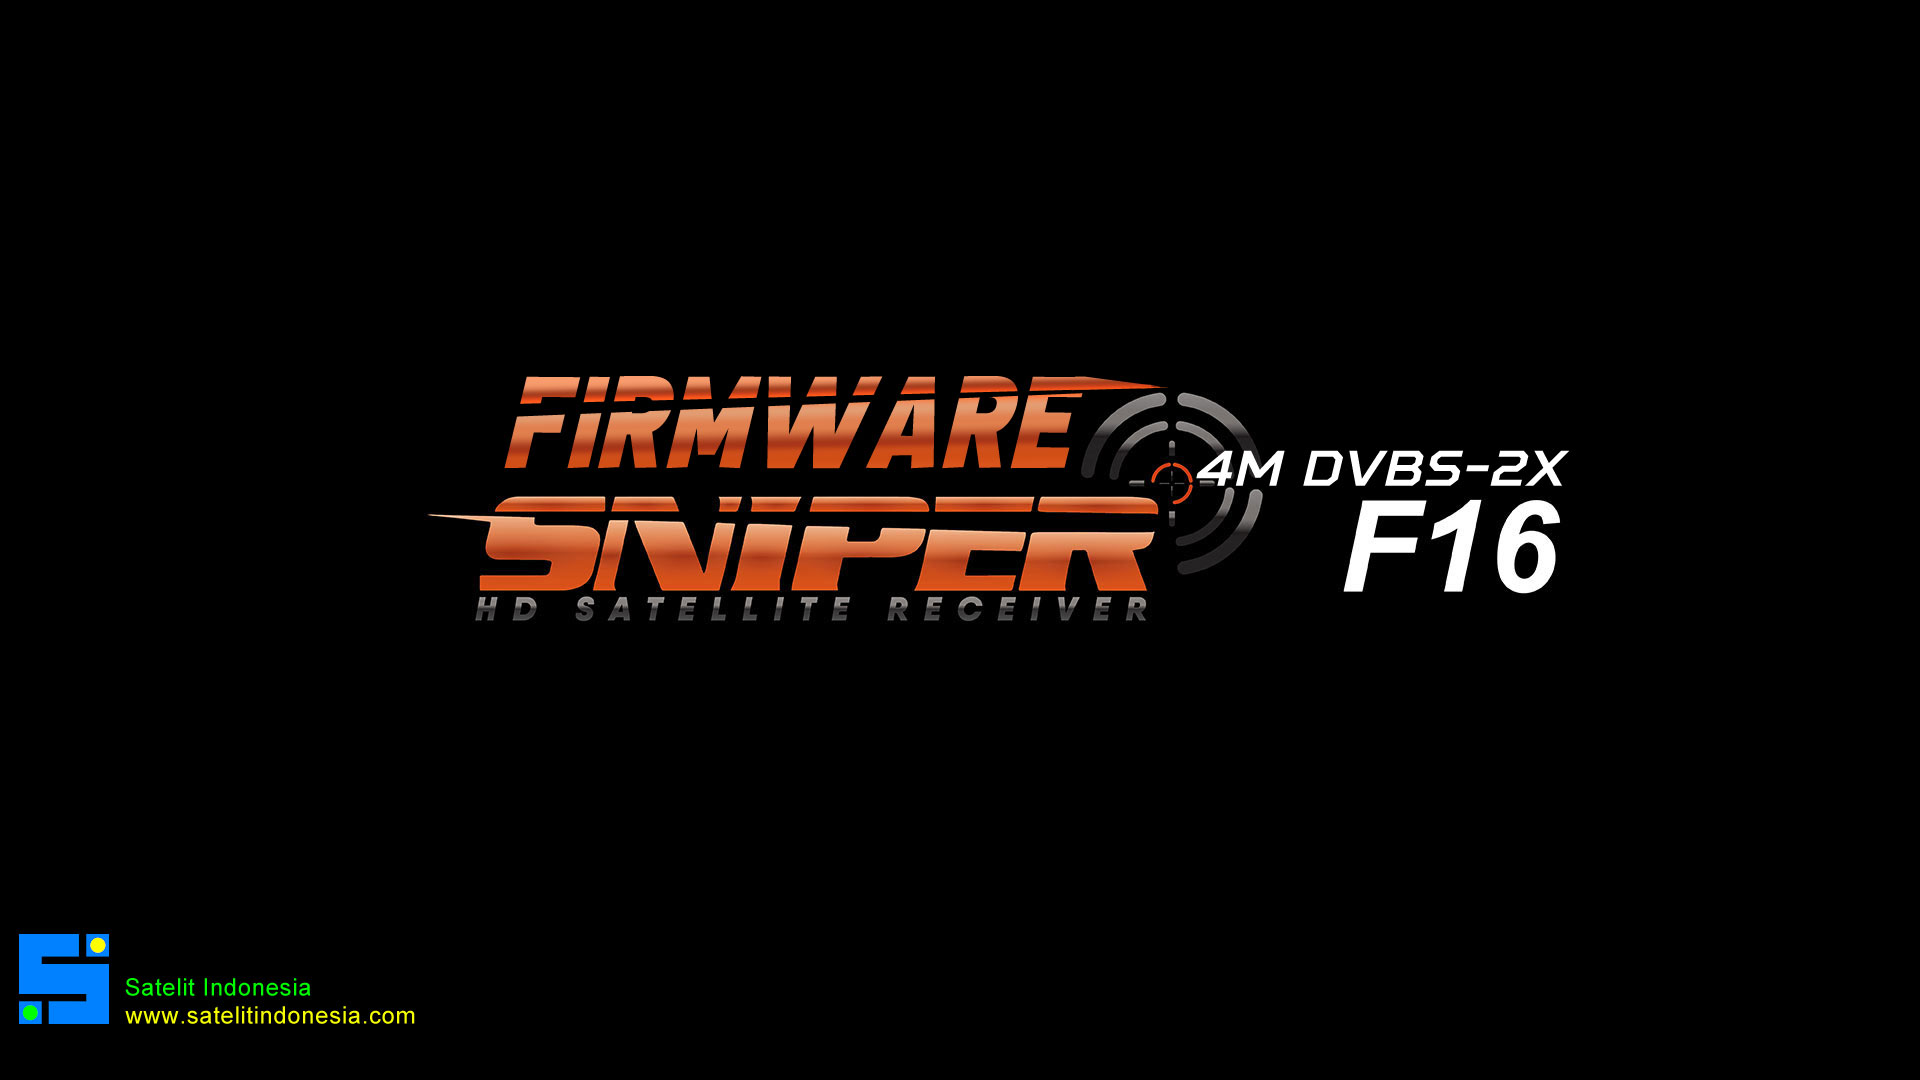 Download Firmware Sniper F16 4MB DVBS-2X Update Software Receiver